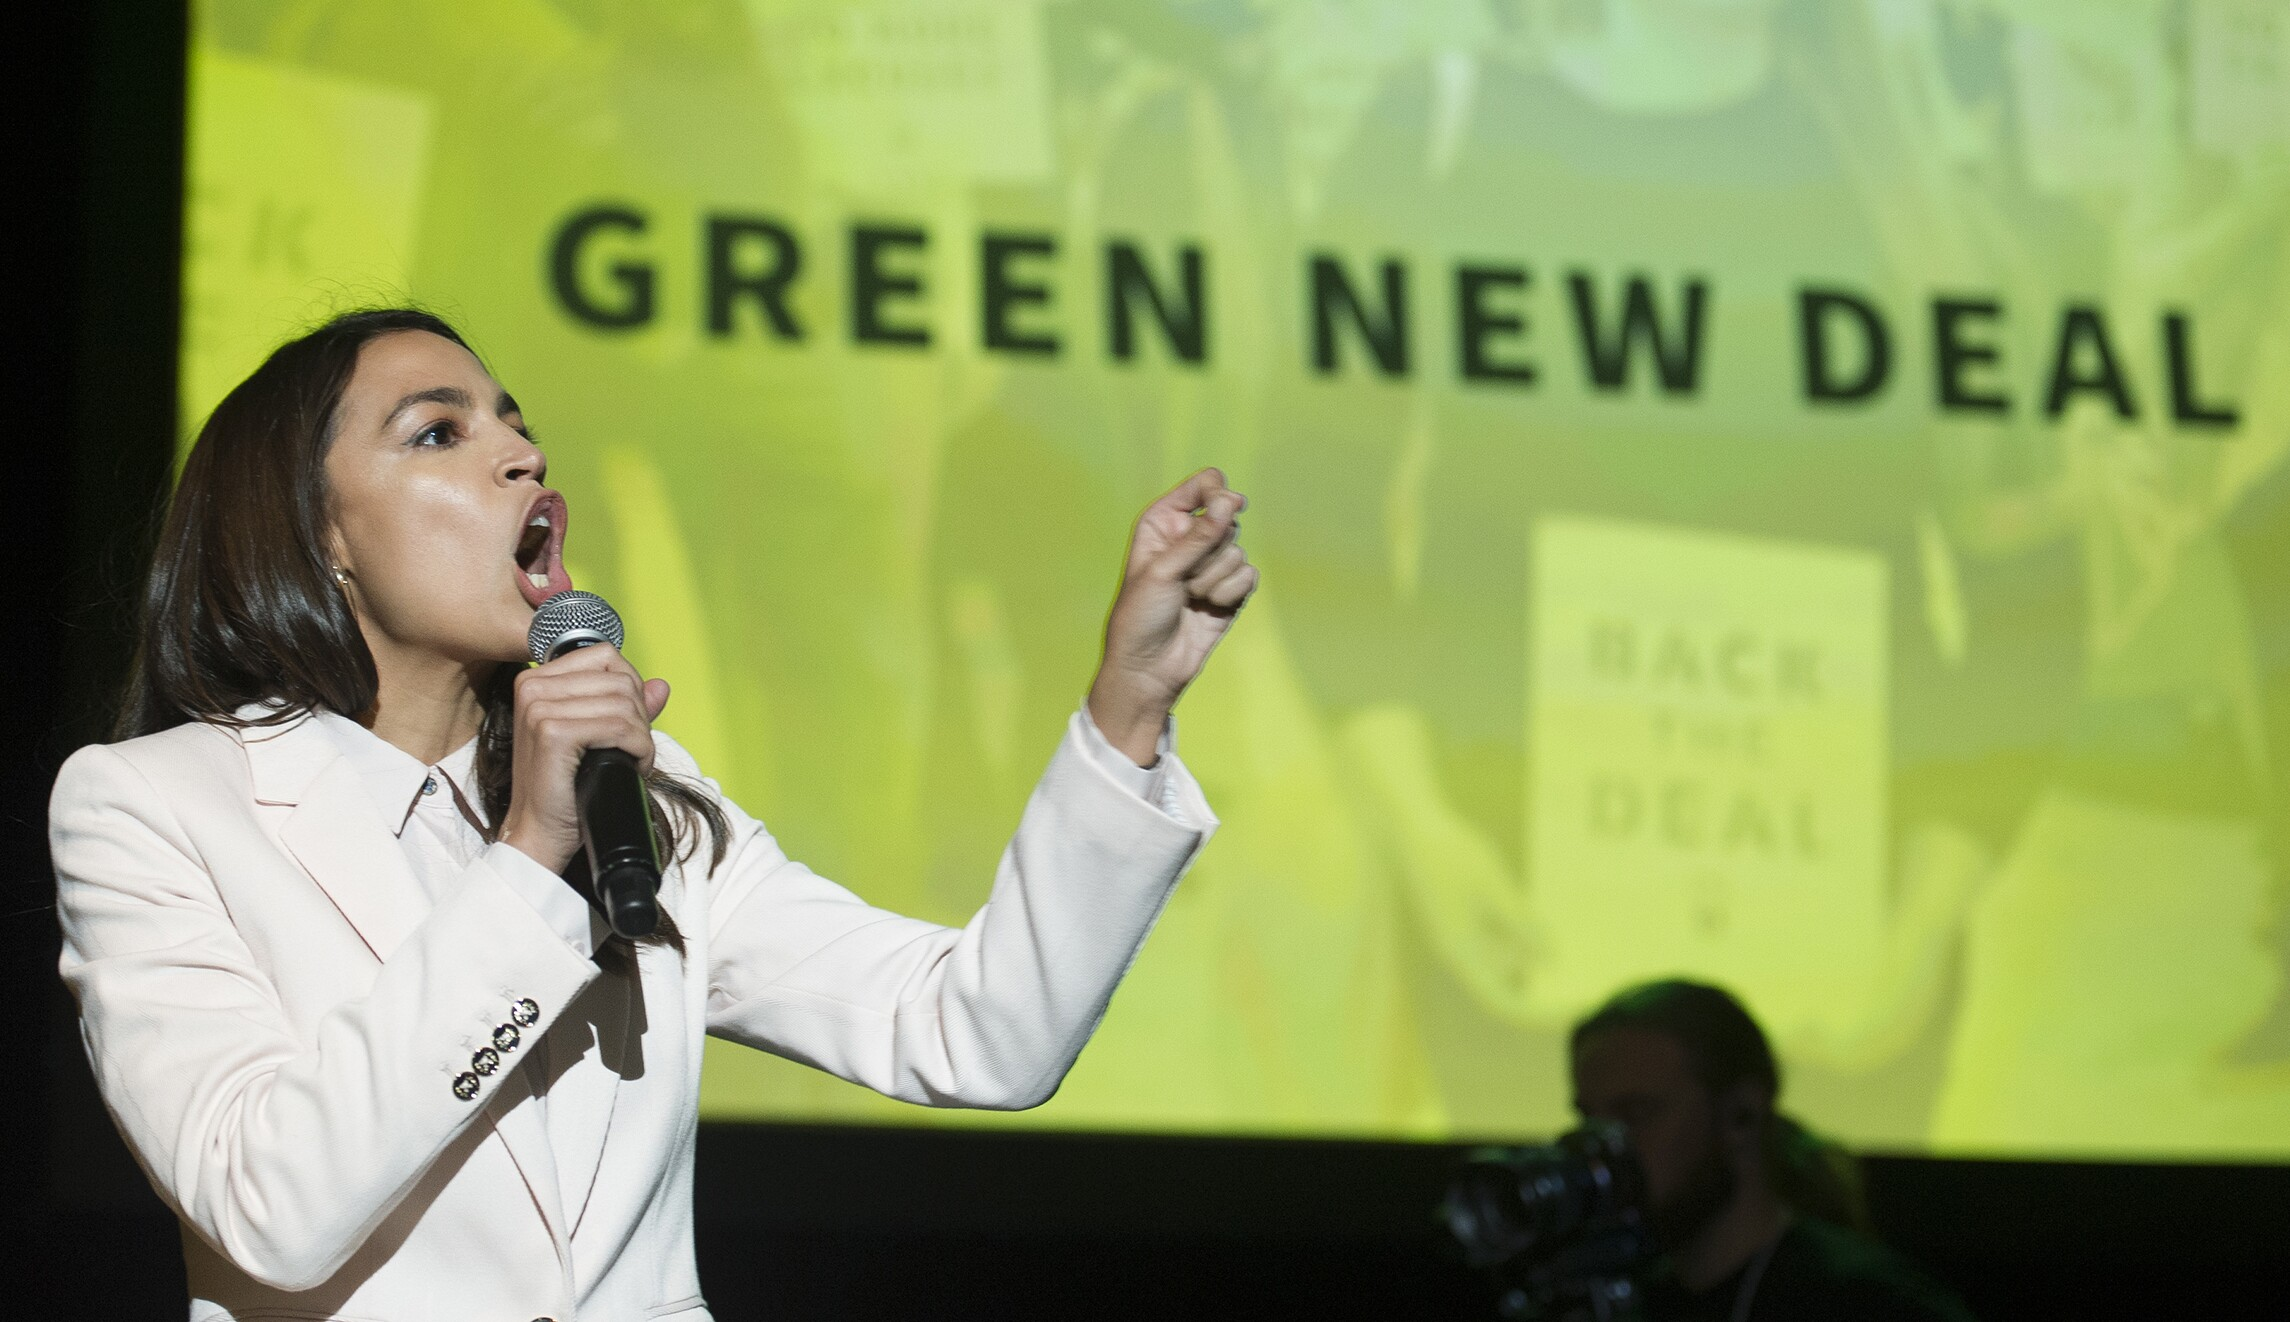 AOC's Green New Deal would boost gas tax $10-$13, 'destroy economy'